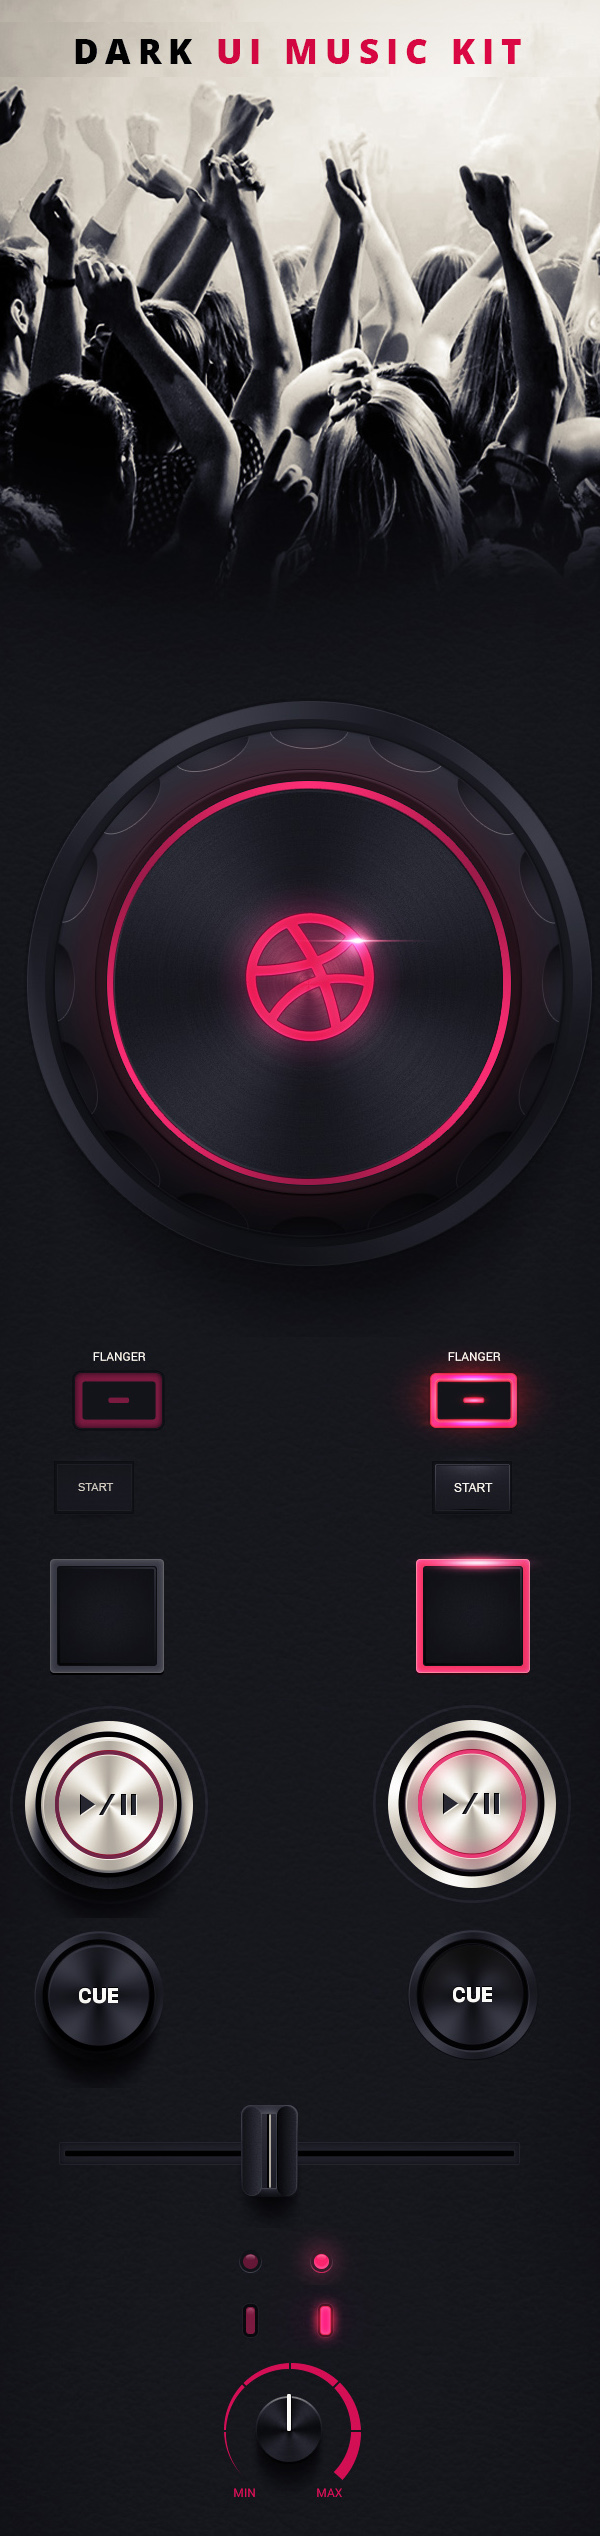 Dark UI Music kit